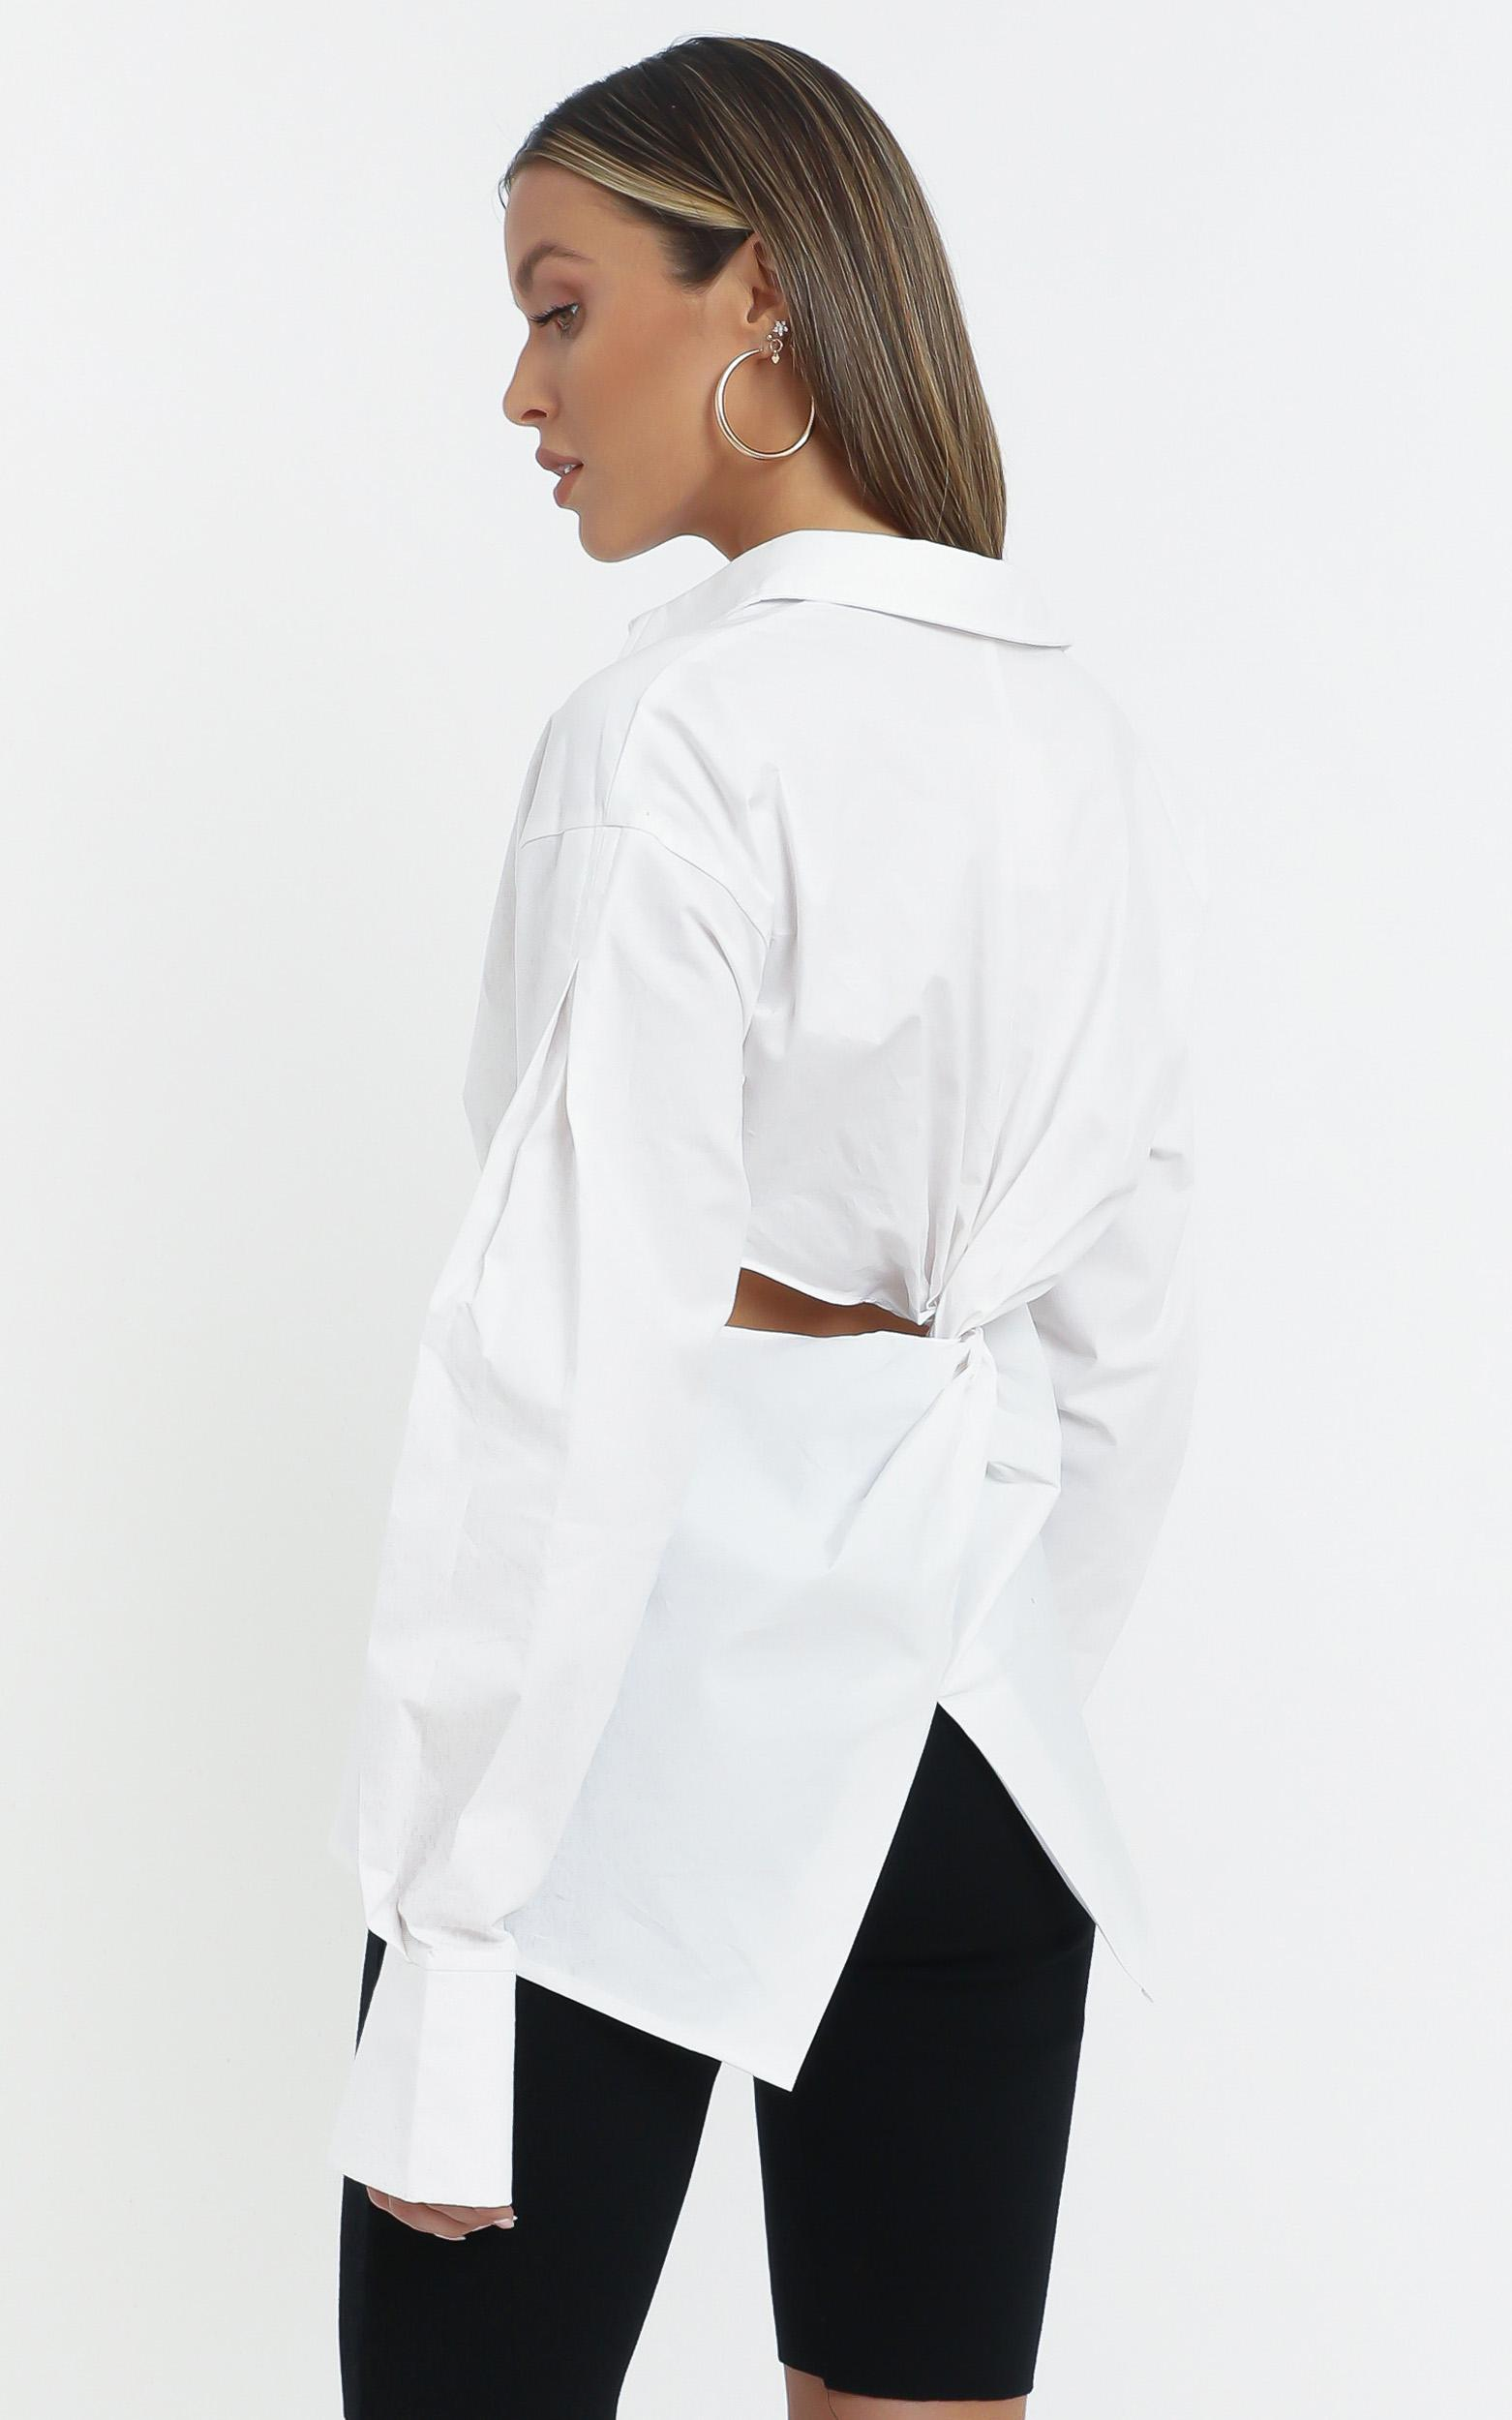 Amity Shirt in White - 14 (XL), White, hi-res image number null